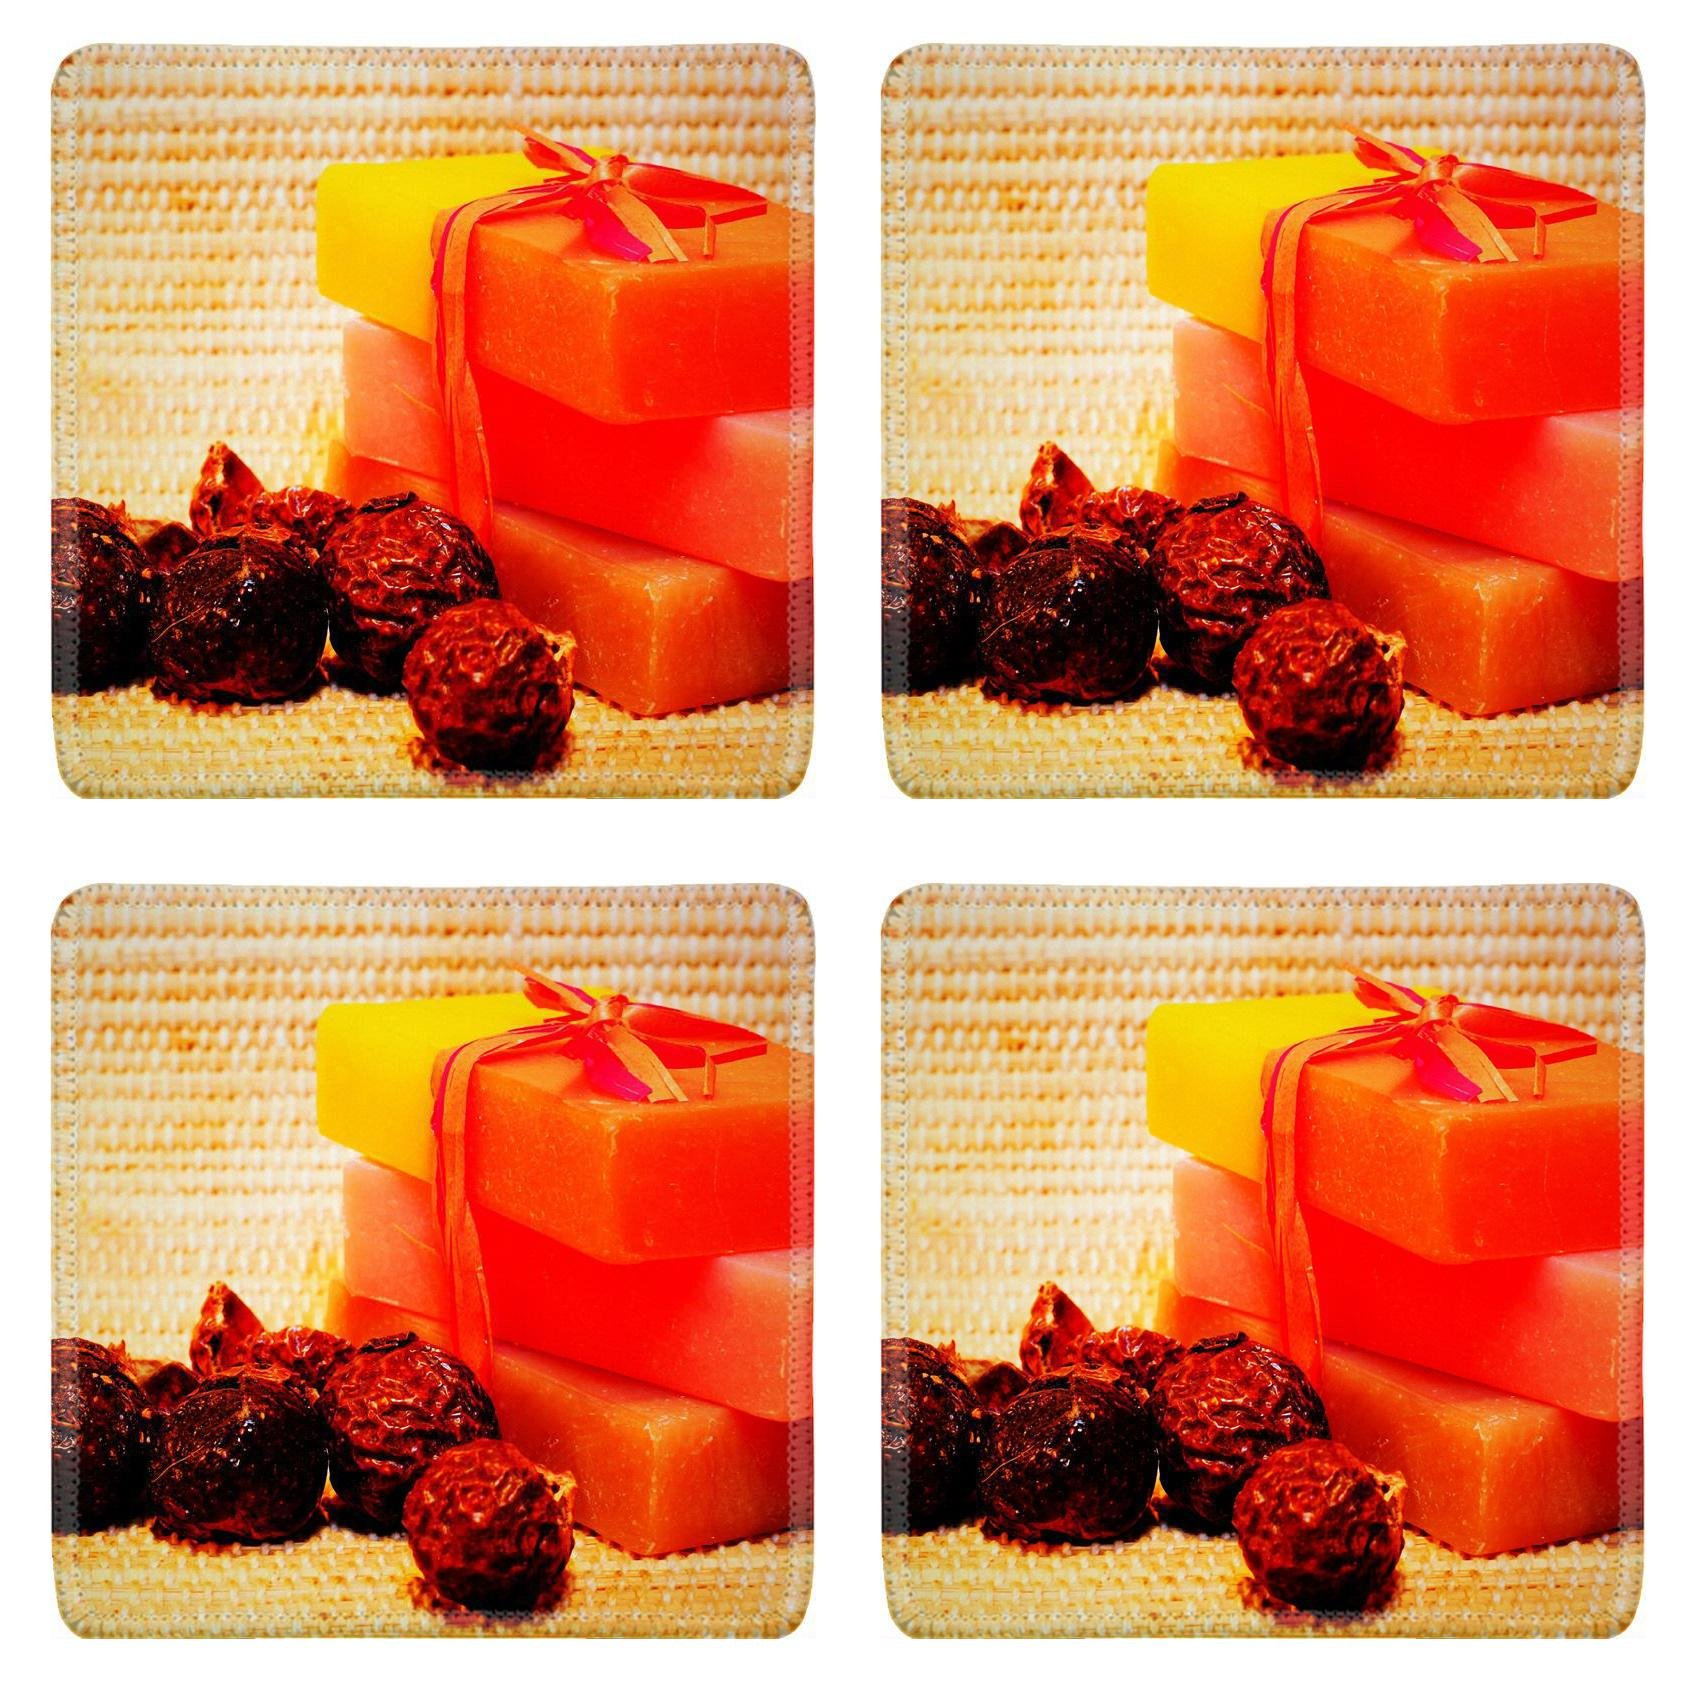 MSD Square Coasters Non-Slip Natural Rubber Desk Coasters design 12031116 Handmade Soap and soap nuts on the bamboo Square Coaster Spa products